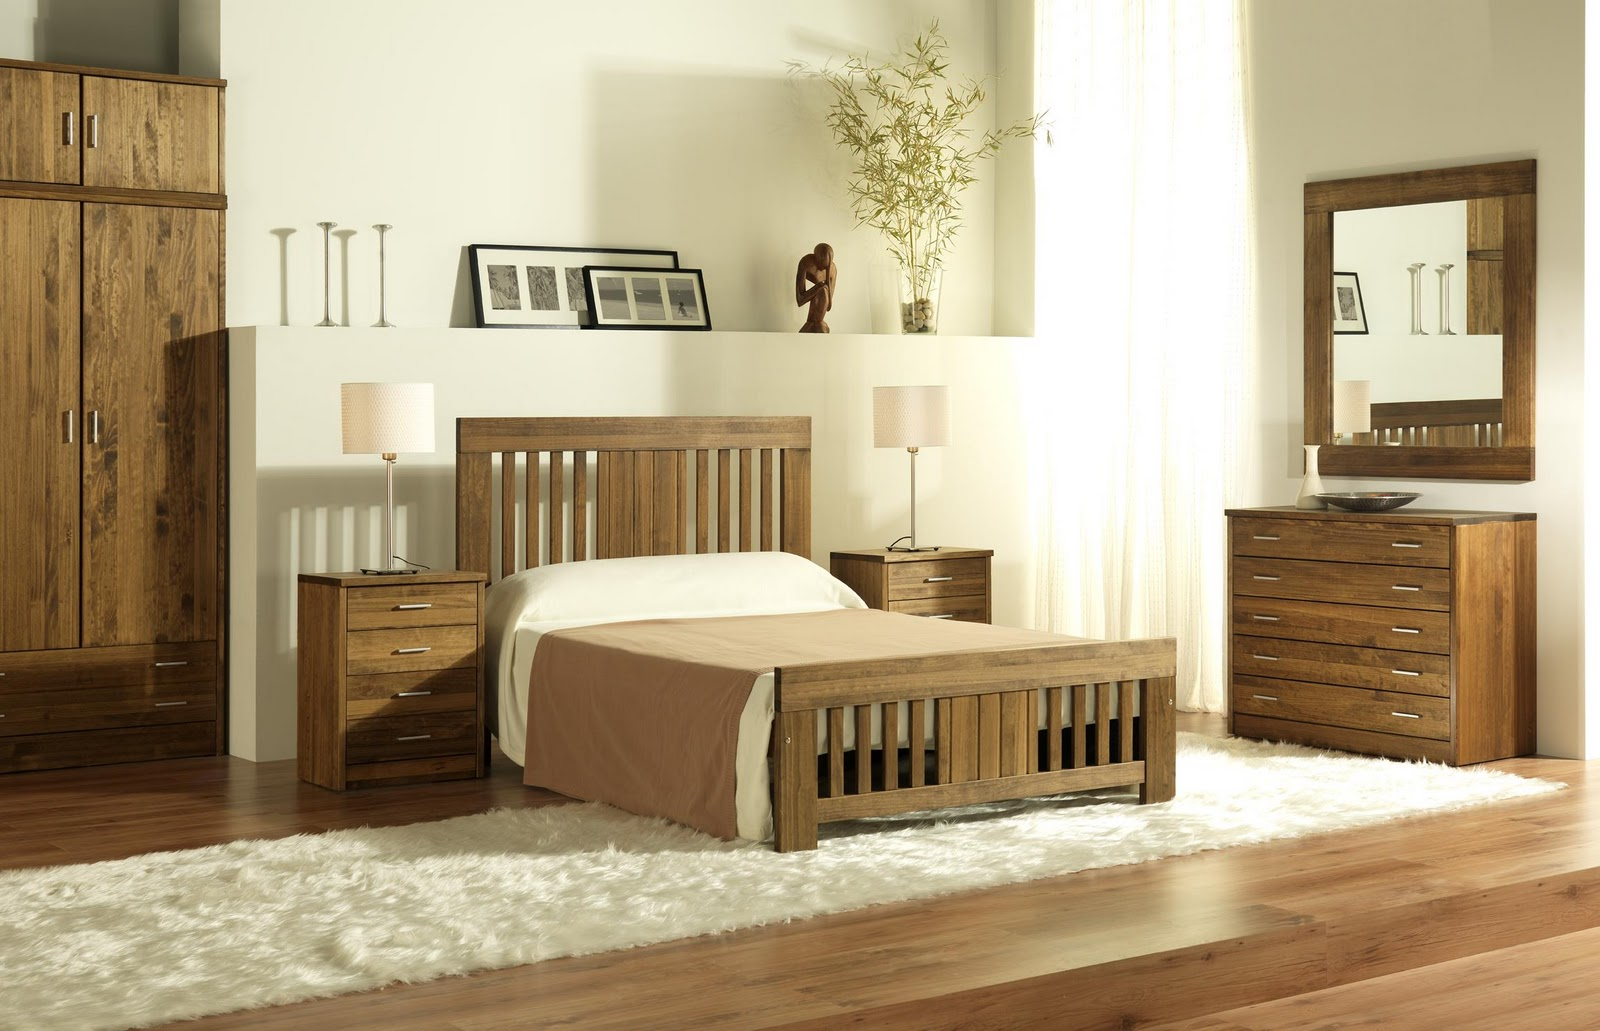 Muebles toscapino pino for Muebles madera